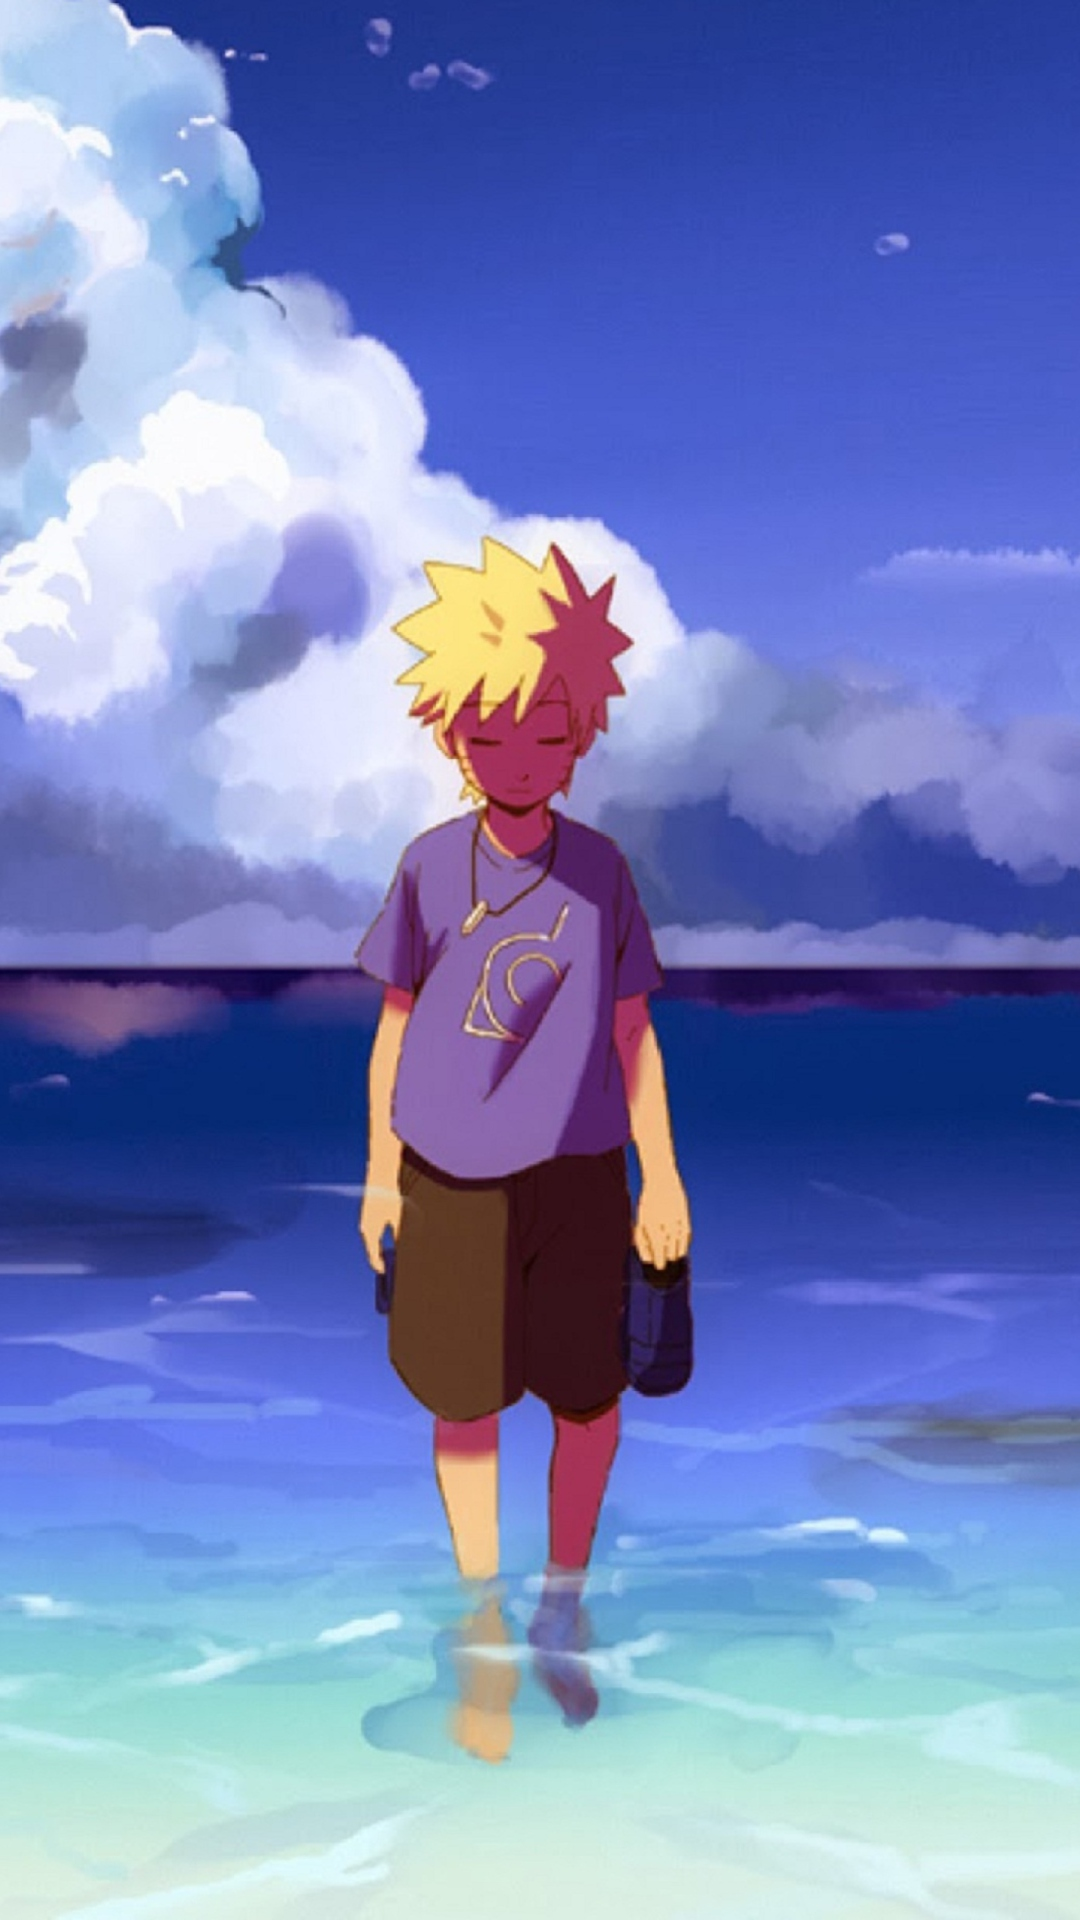 Download Wallpaper Naruto Iphone Gallery